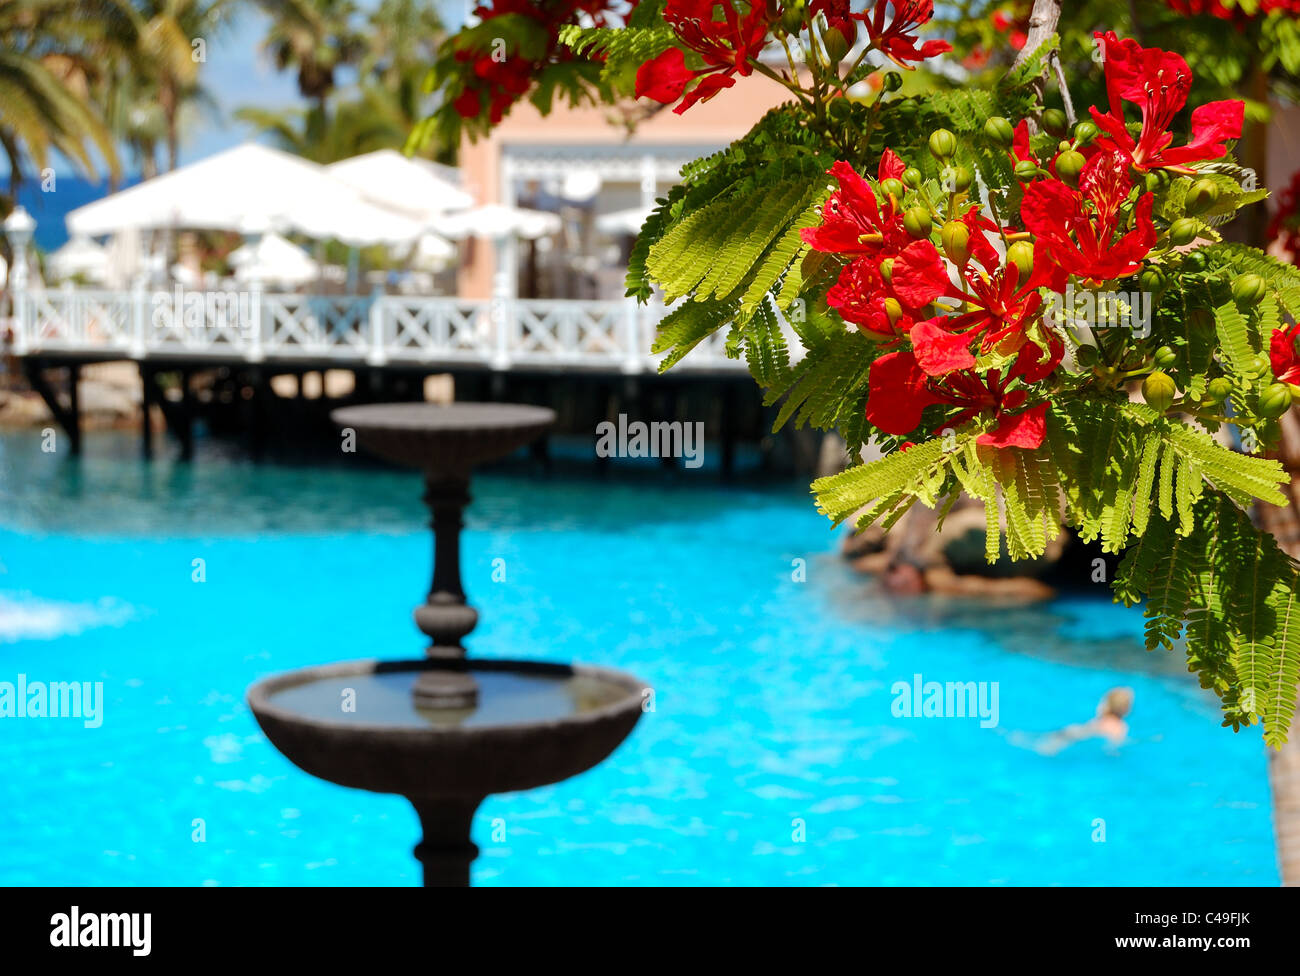 Flowers In Focus At Swimming Pool Open Air Restaurant And Luxury Stock Photo Royalty Free